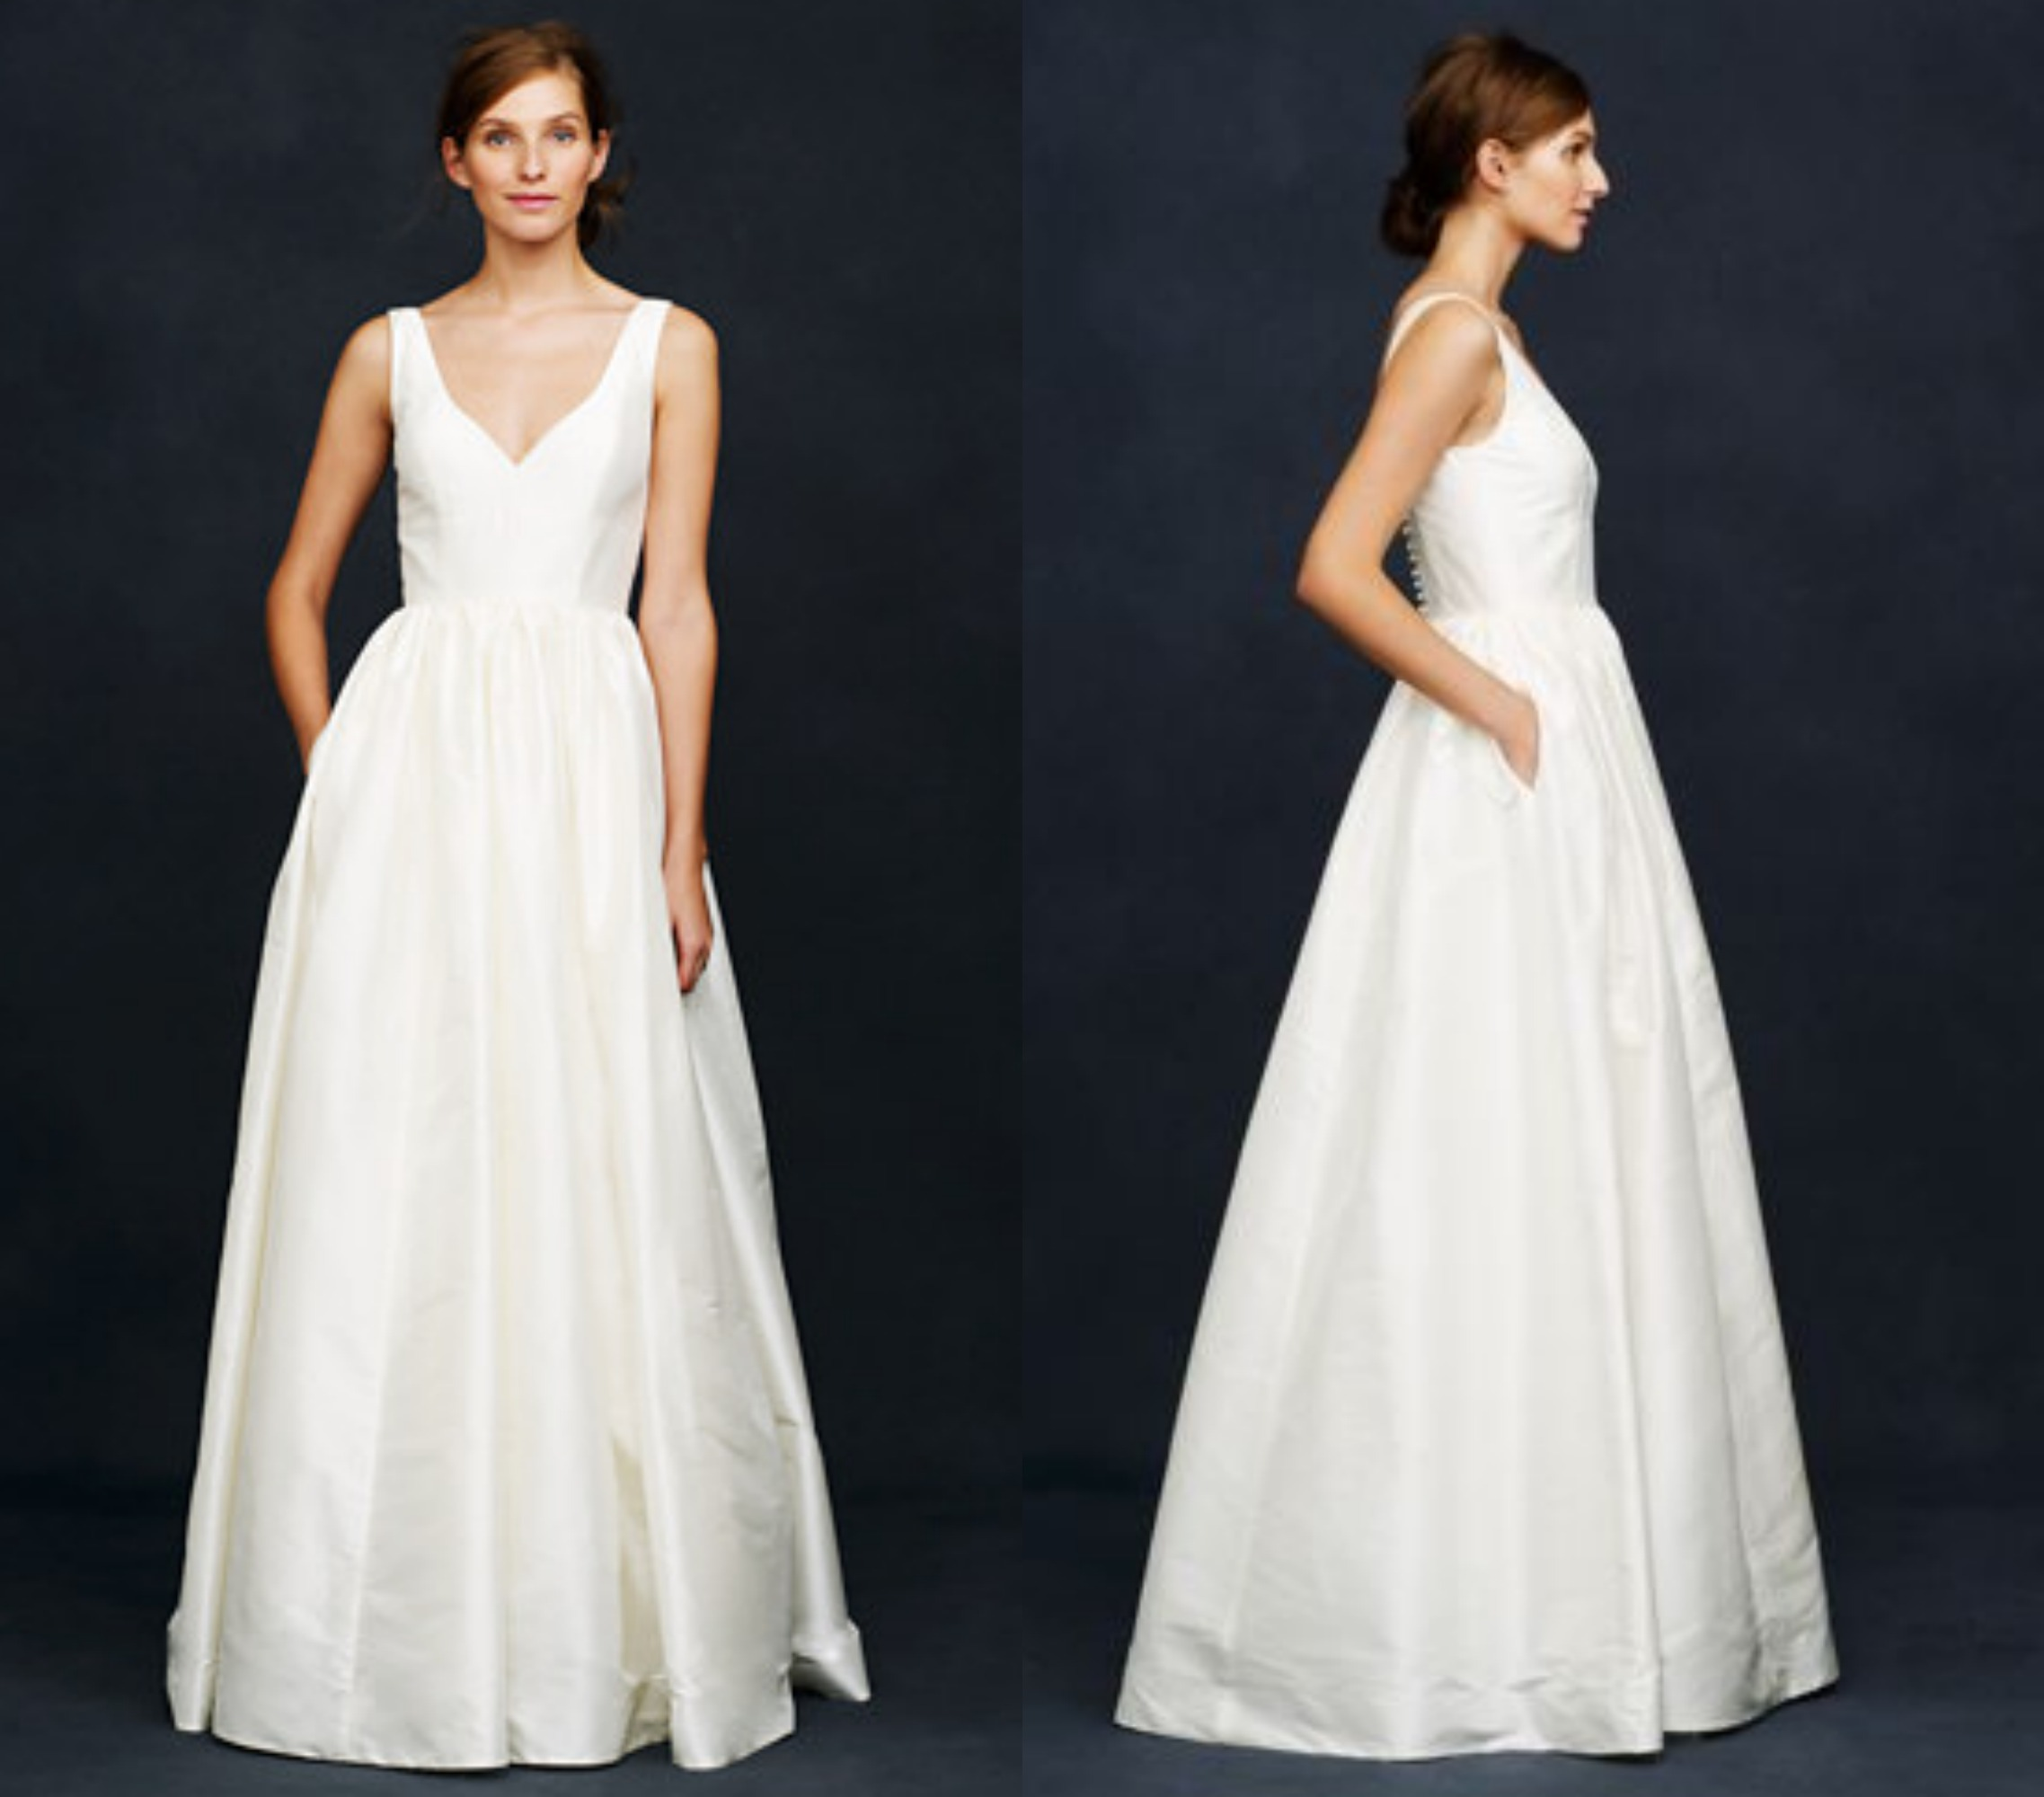 J.Crew Wedding Dresses For The Preppy Bride